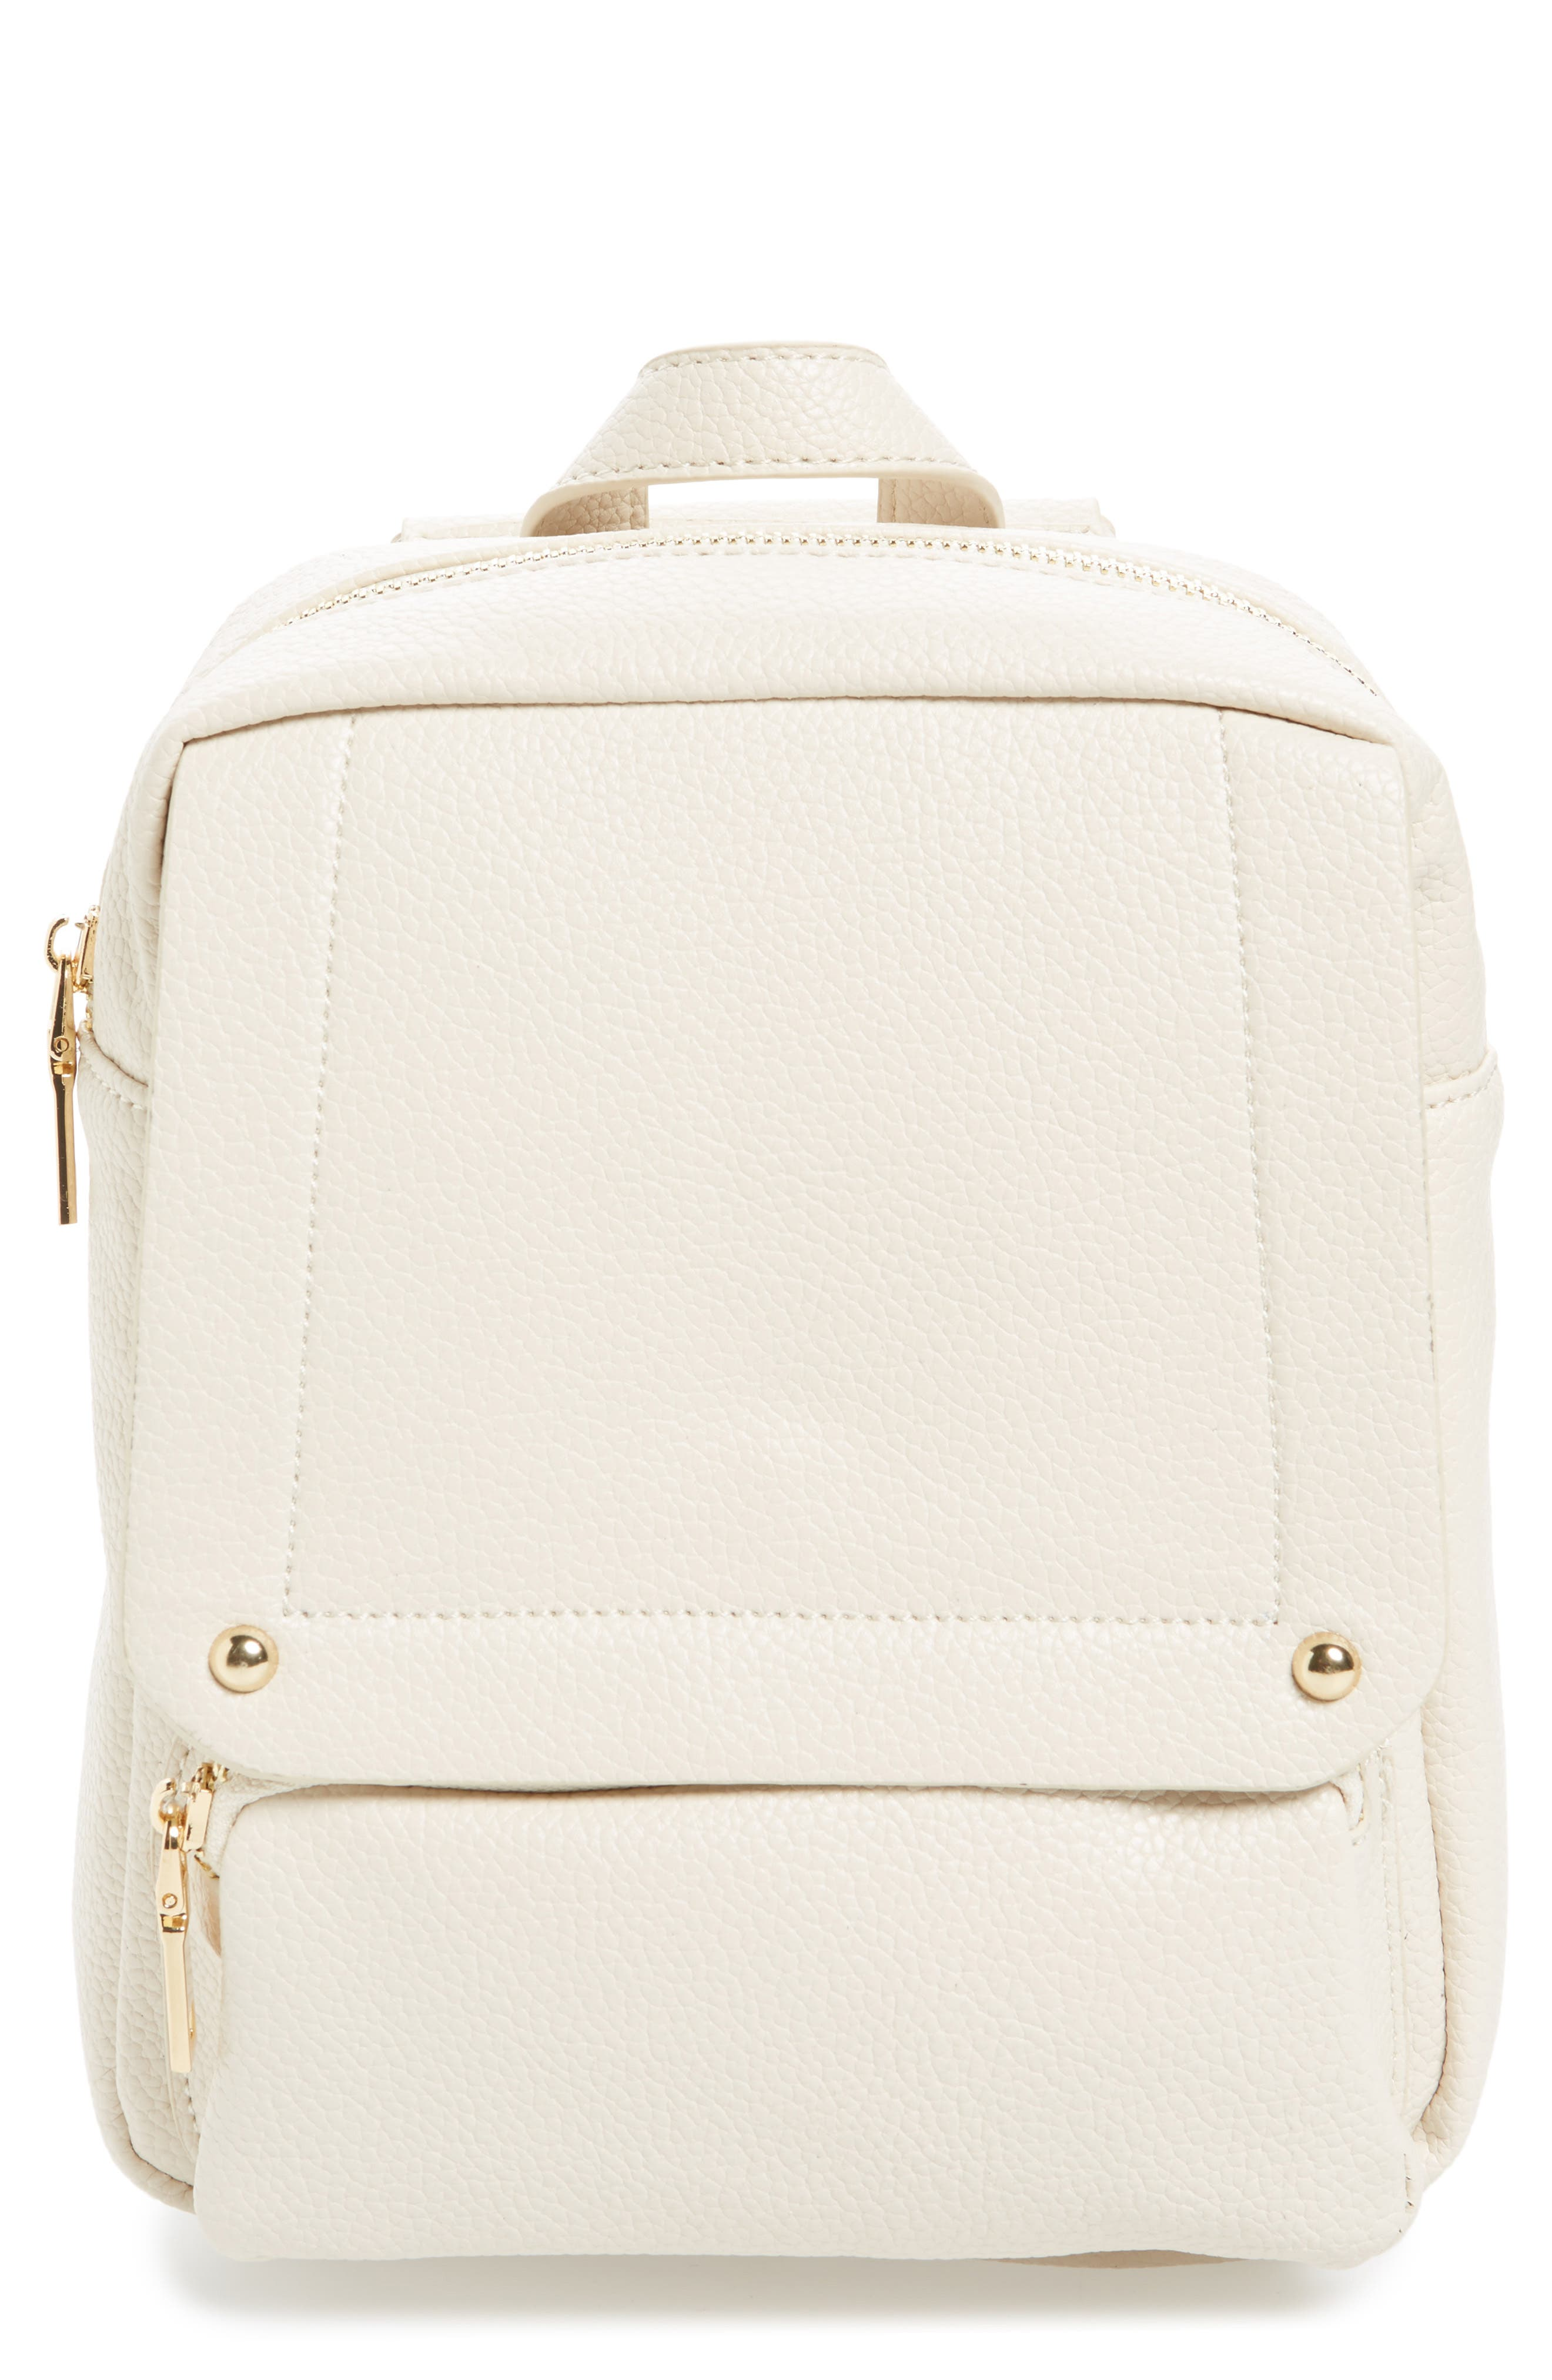 Alternate Image 1 Selected - Girly Faux Leather Flap Mini Backpack